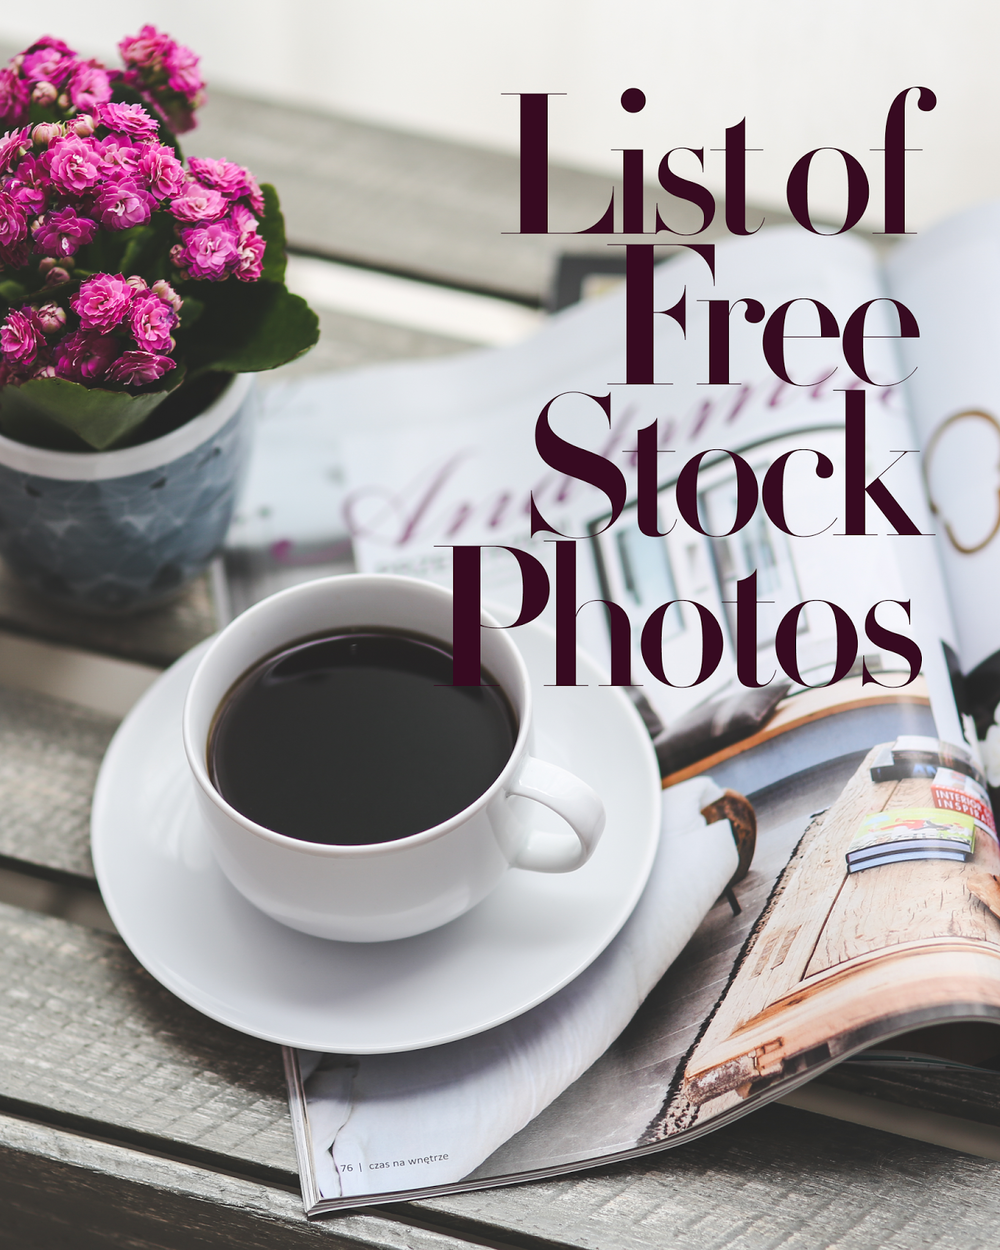 List of Free Stock Photos that is great for your business